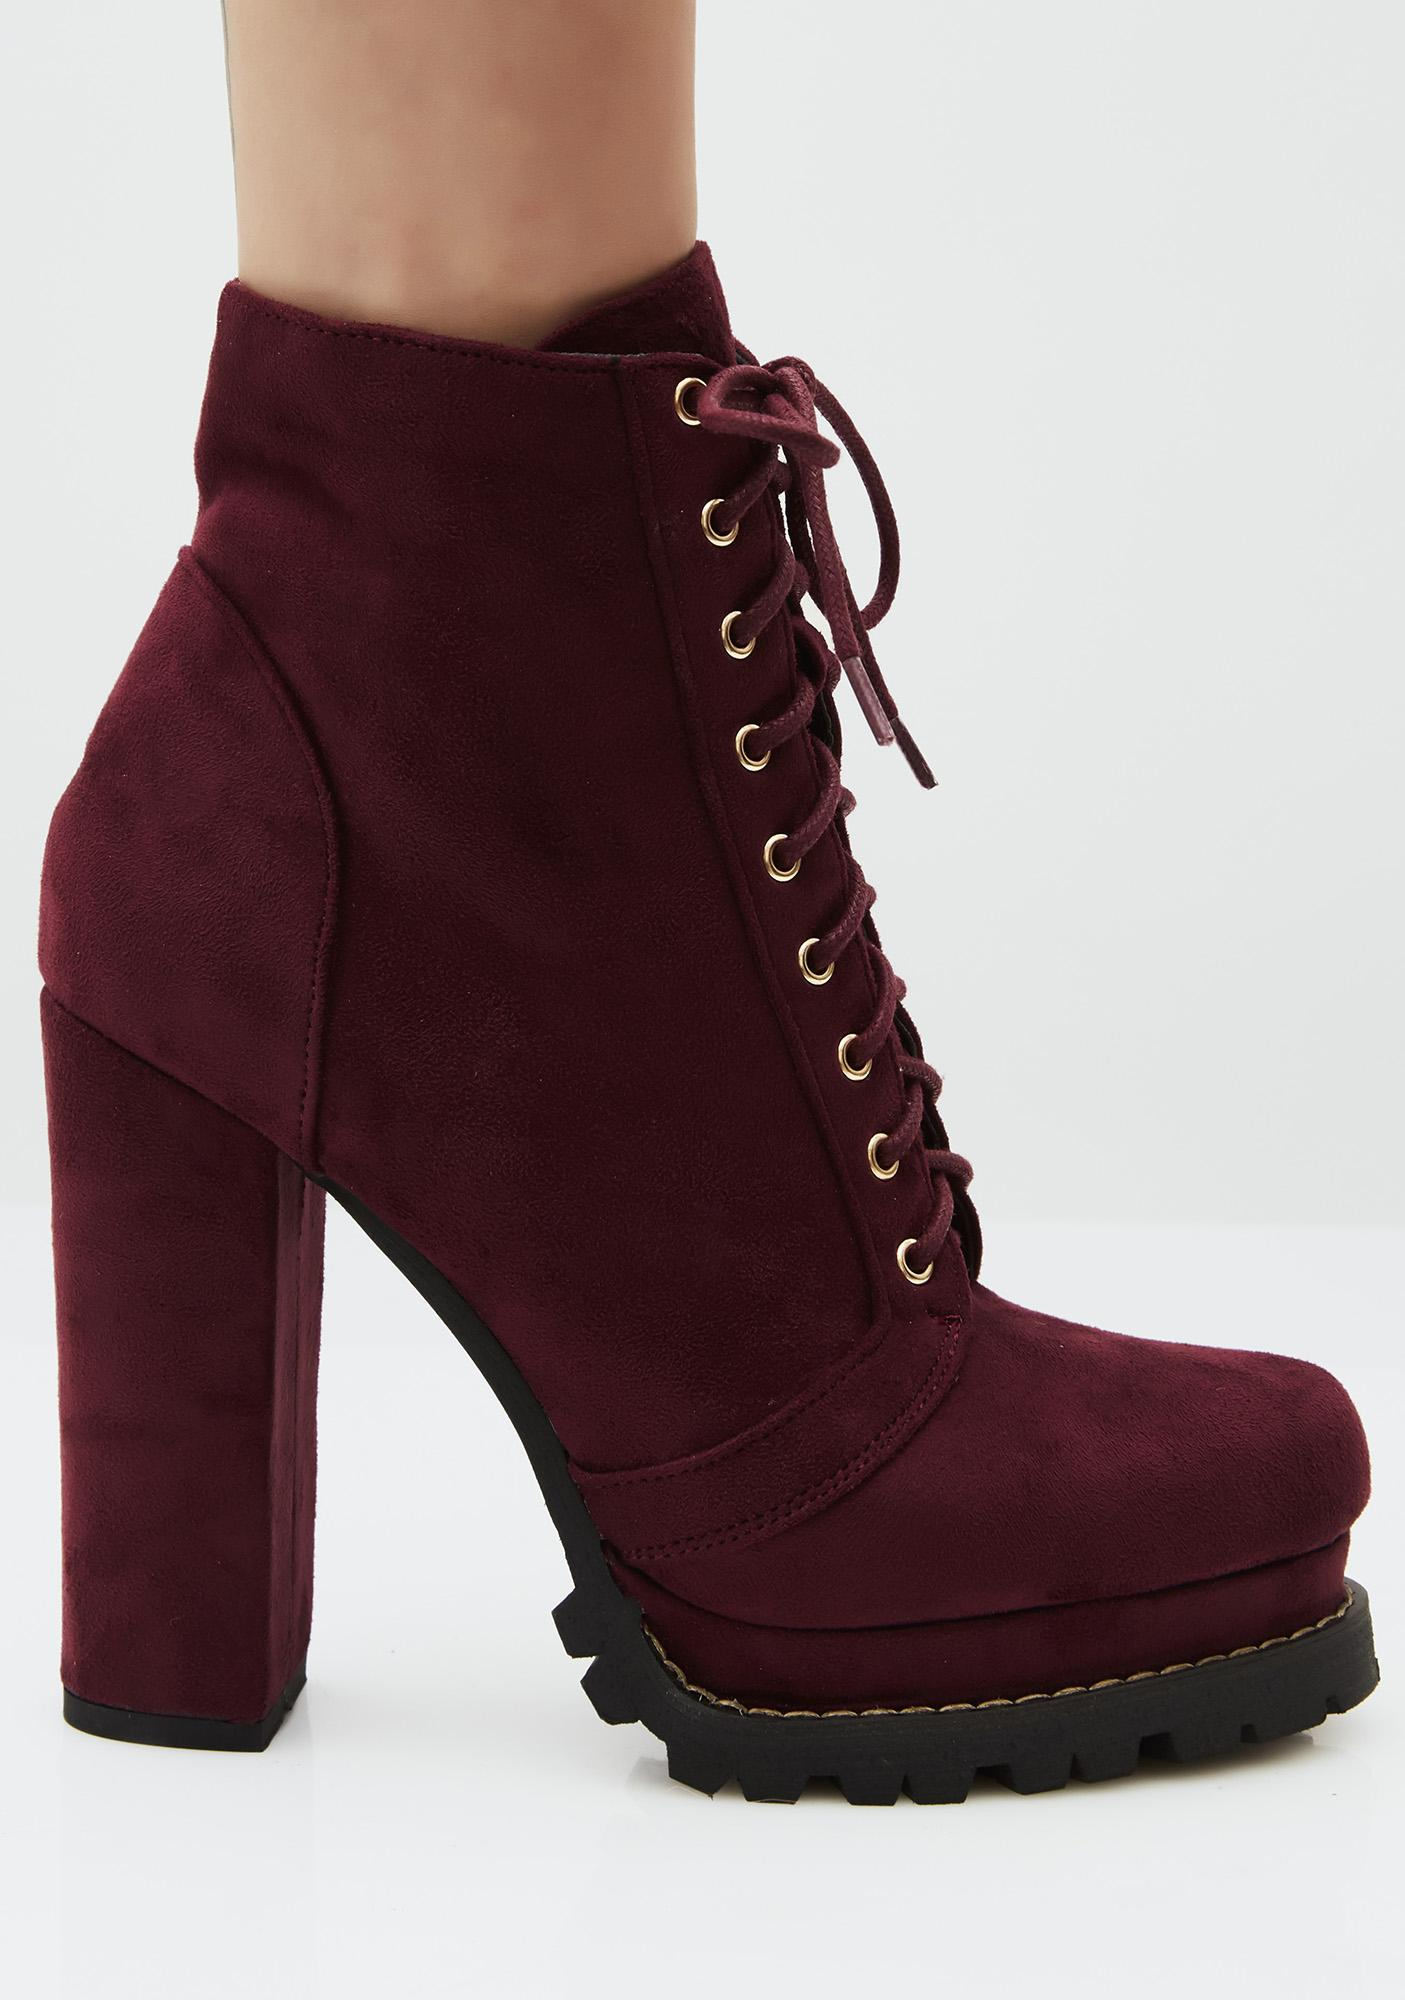 Sassy Stepper Lace-Up Boots